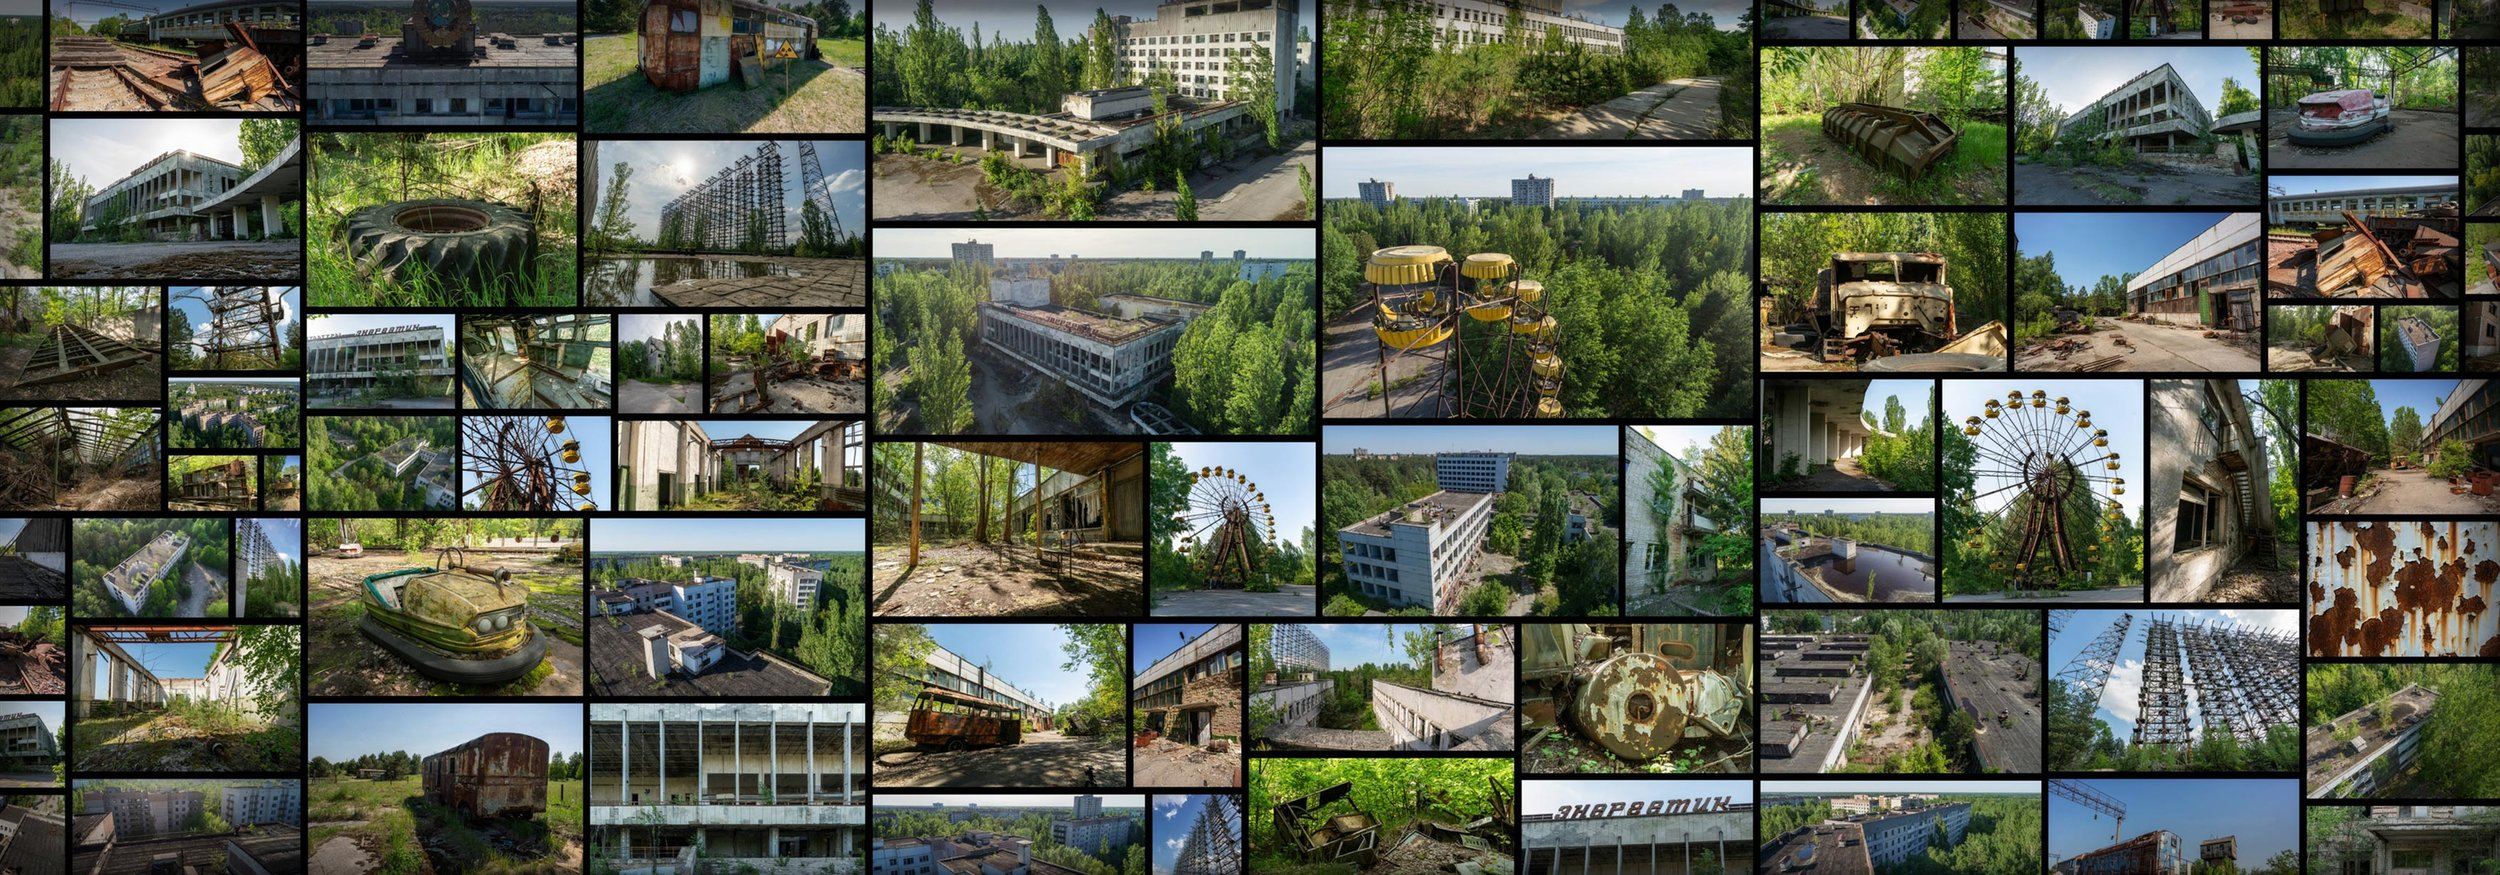 Chernobyl Exclusion Zone HBO Pripyat Nuclear Power Plant Radiation 1986